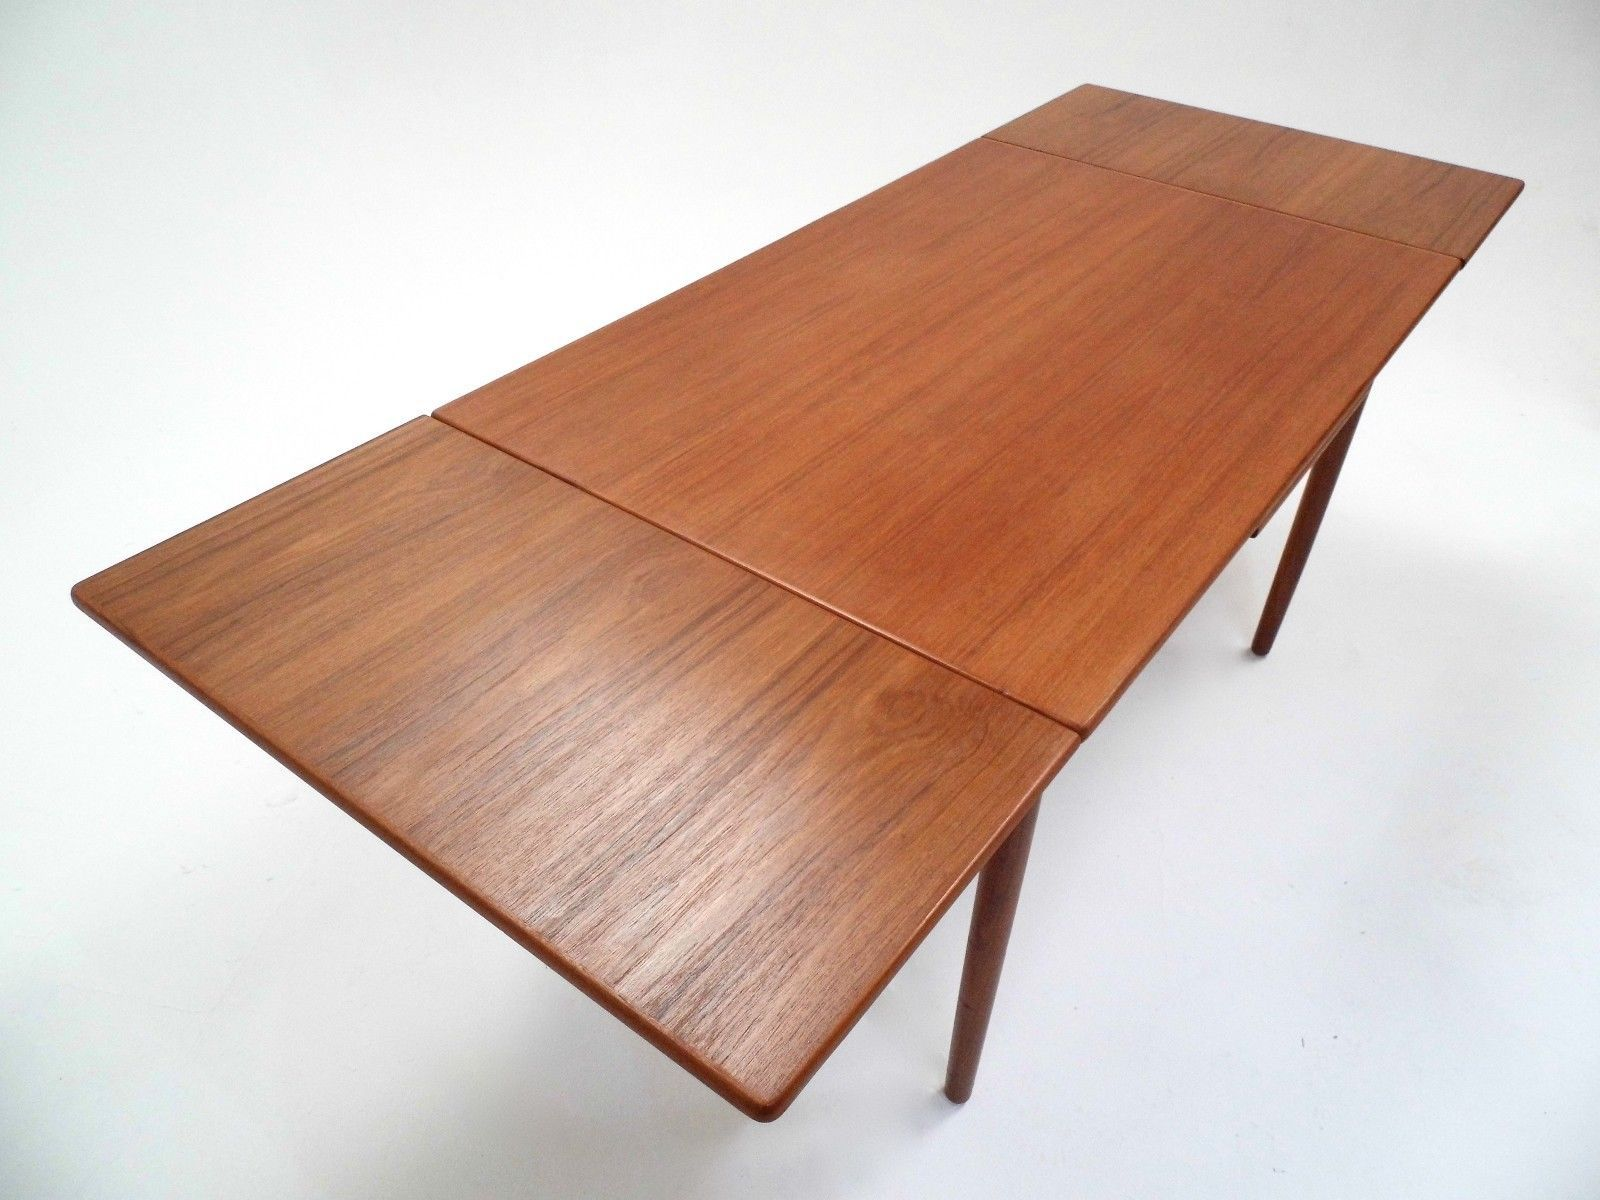 used dining table for sale qatar 28 images dining  : danish teak extending dining table 1960s 10 from wallpapersist.com size 1600 x 1200 jpeg 188kB